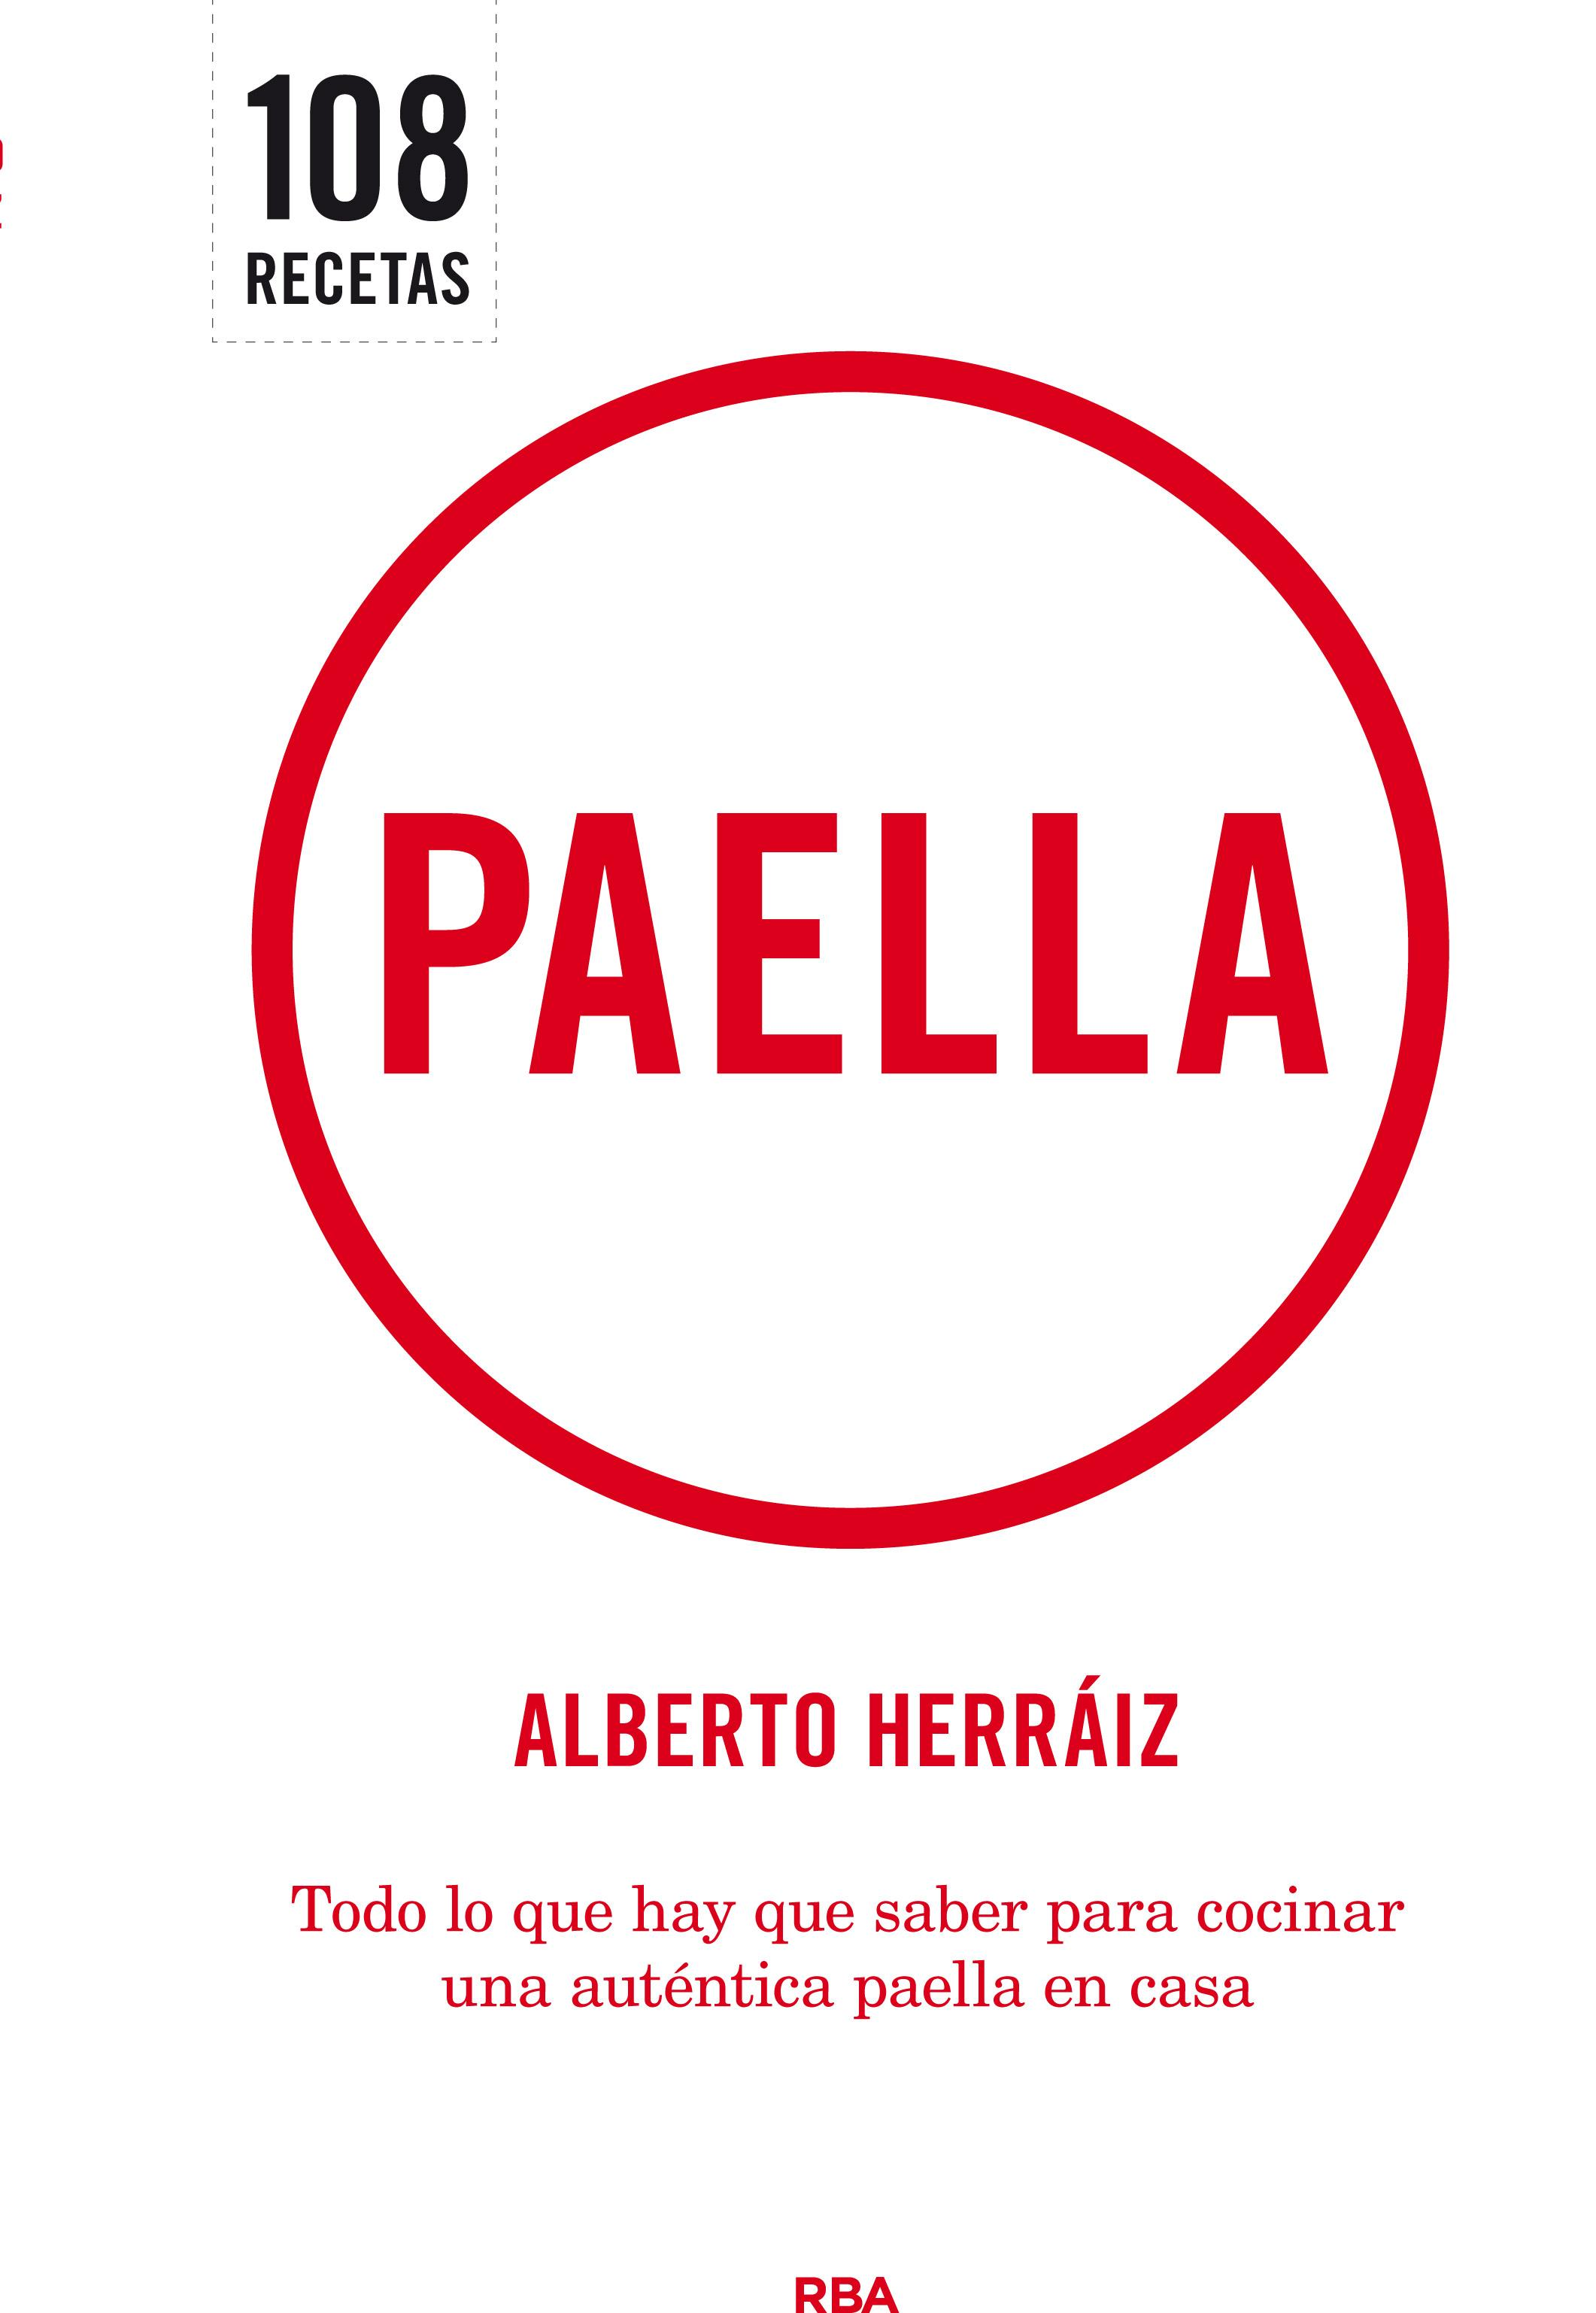 Paella, y arroces - $17.900